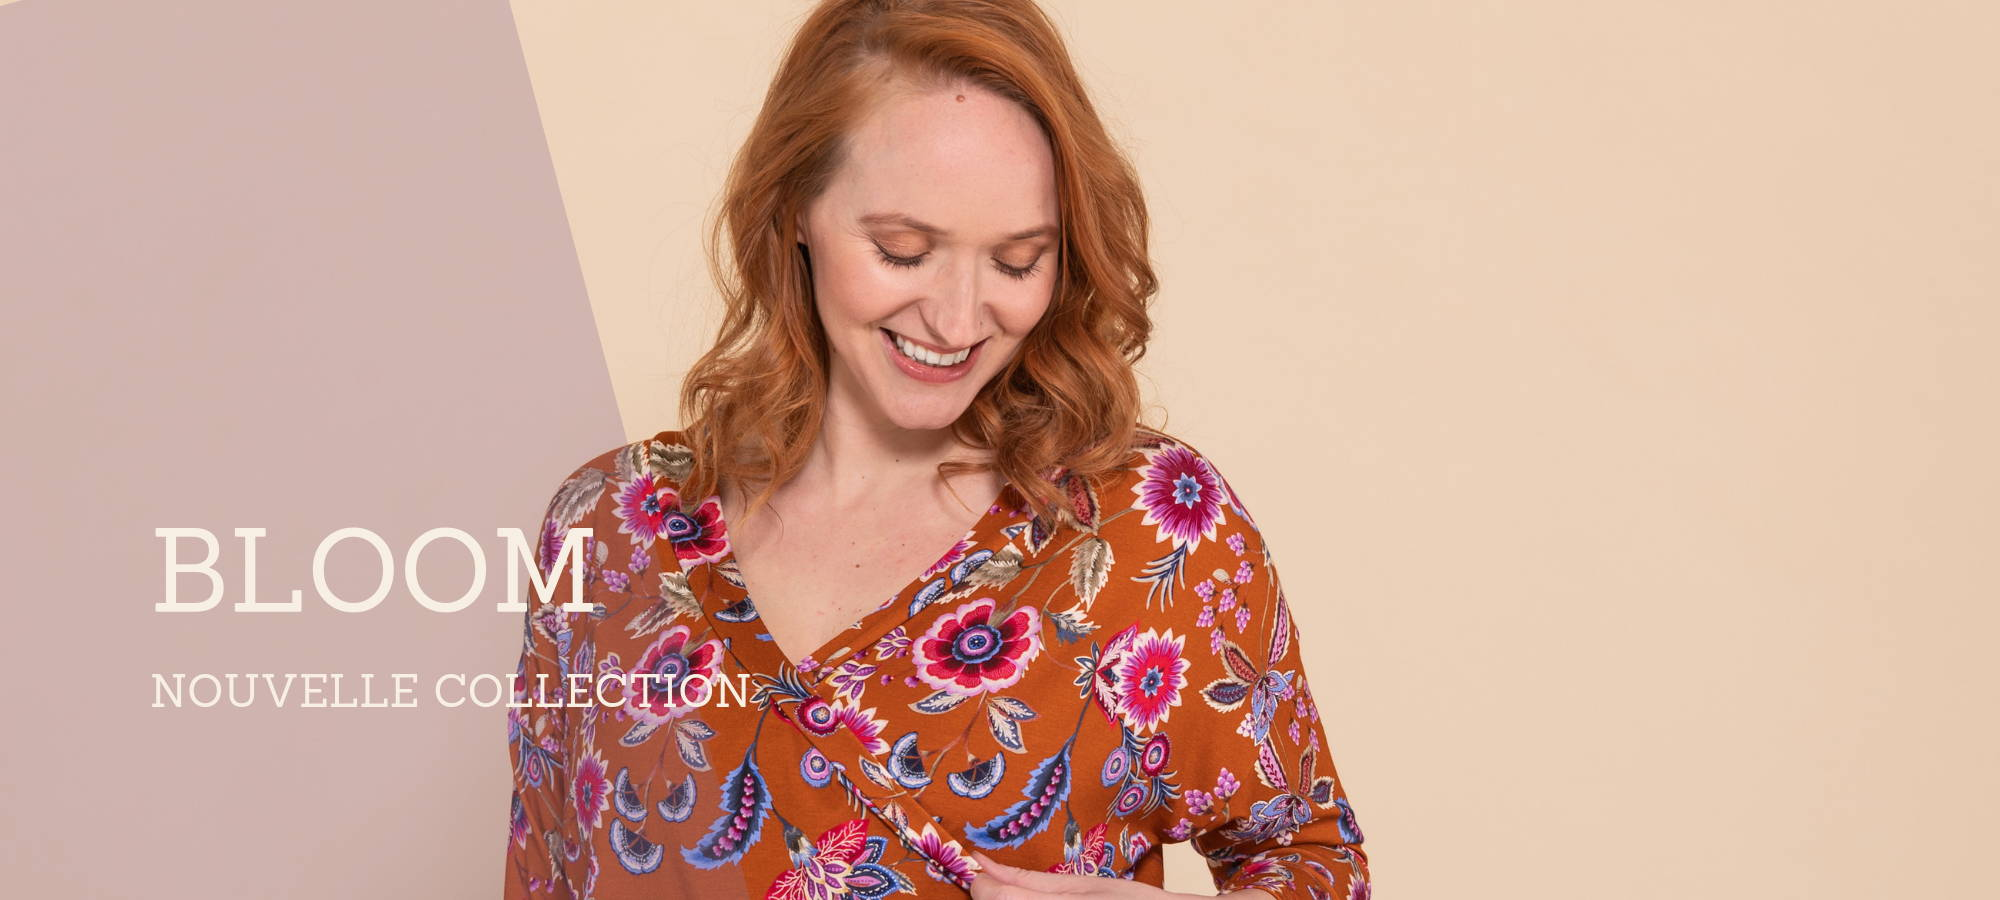 Bloom - Nouvelle collection